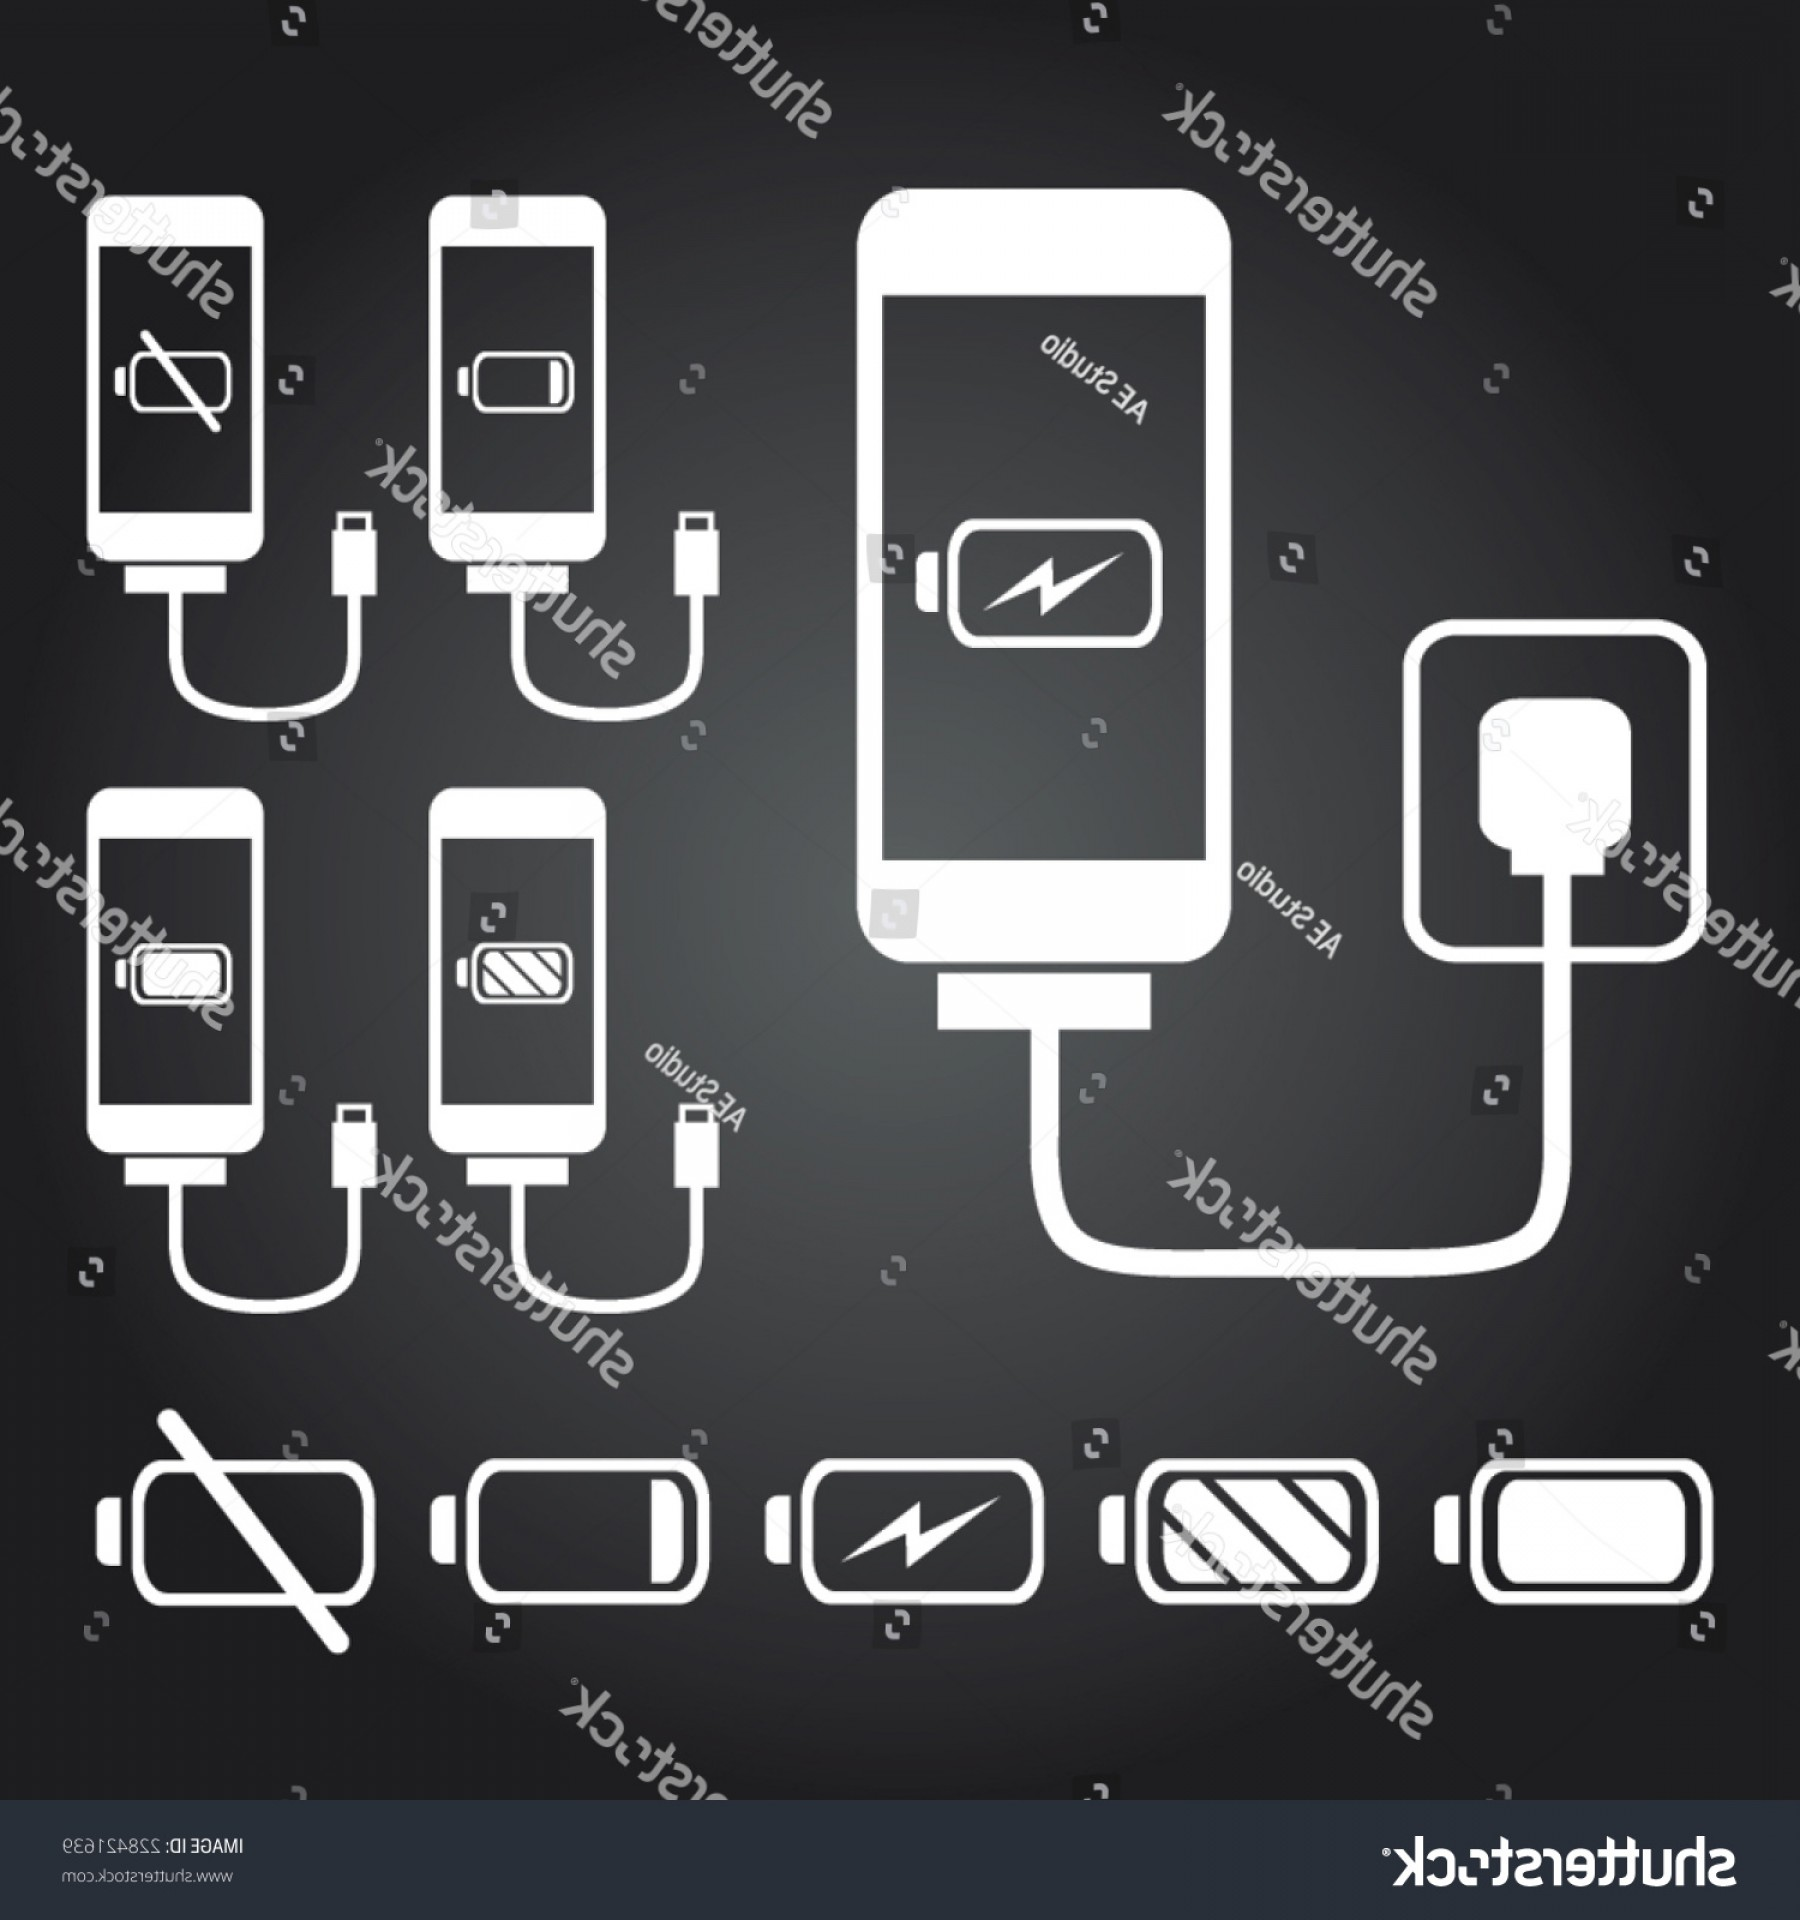 IPhone Battery Vector Icons: Mobile Phone Smart Iphone Charge Battery